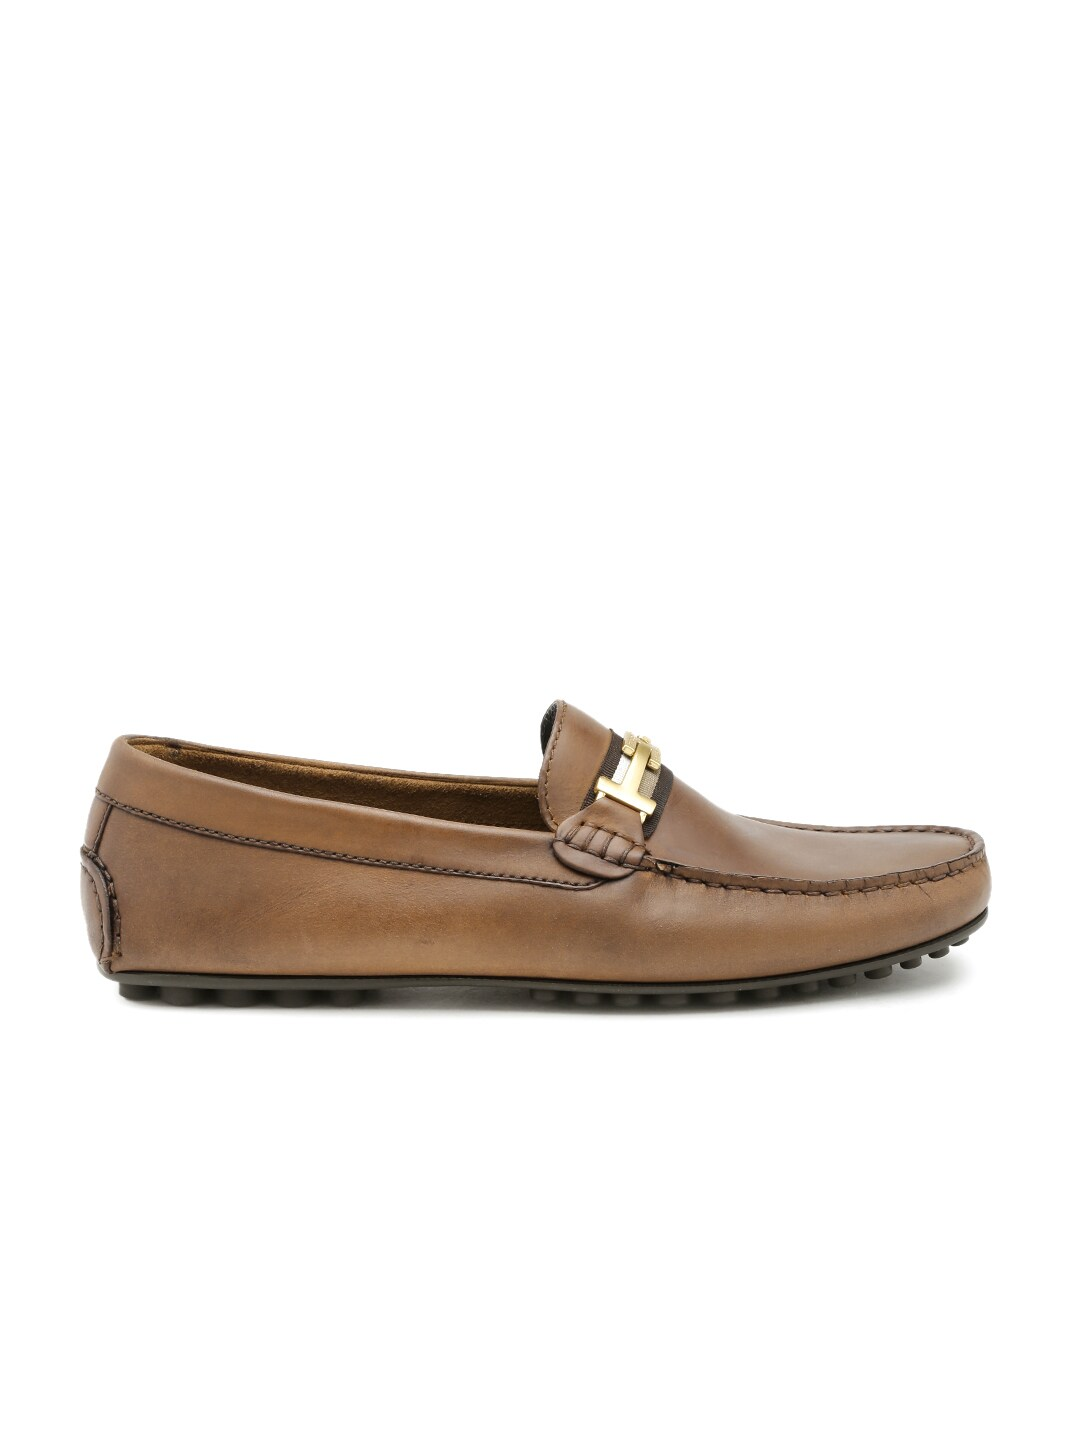 0d9ec8aa2fae Tommy hilfiger a6amf045 Men Tan Brown Leather Loafers - Best Price ...